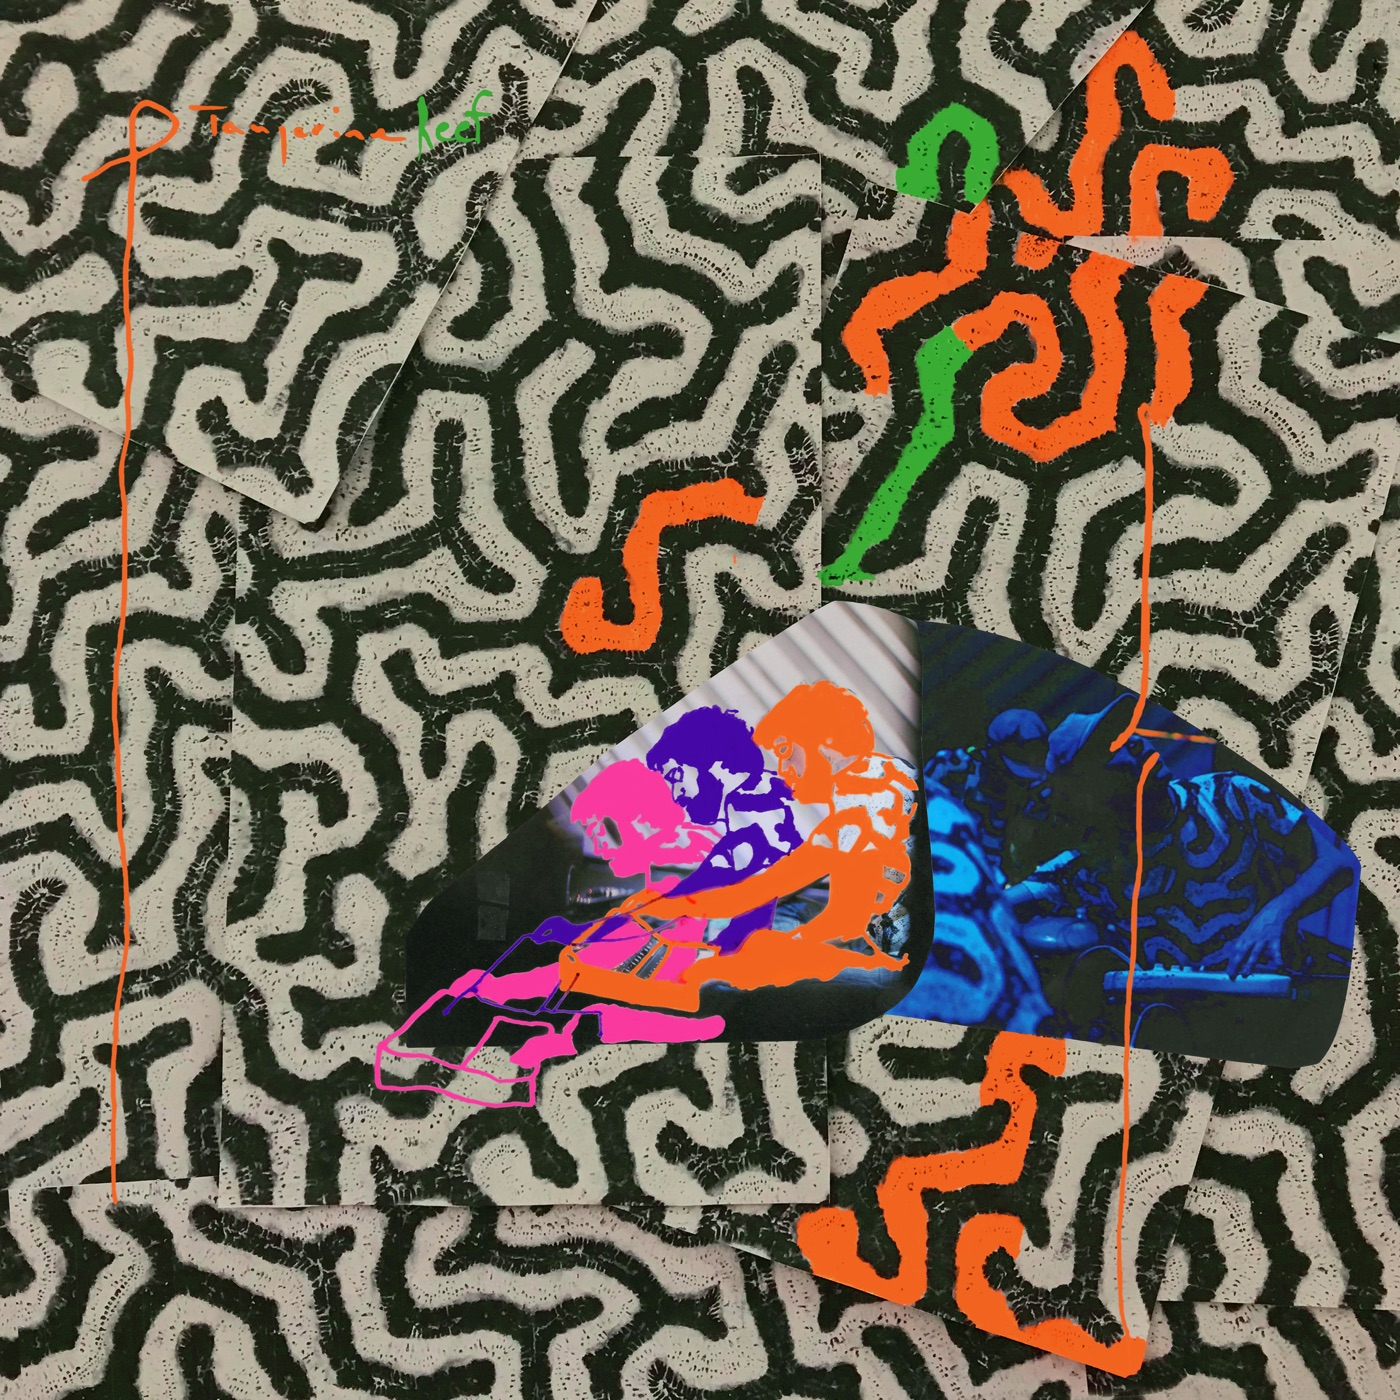 Download animal collective tangerine reef itunes plus aac m4a download animal collective tangerine reef itunes plus aac m4a plus premieres malvernweather Image collections